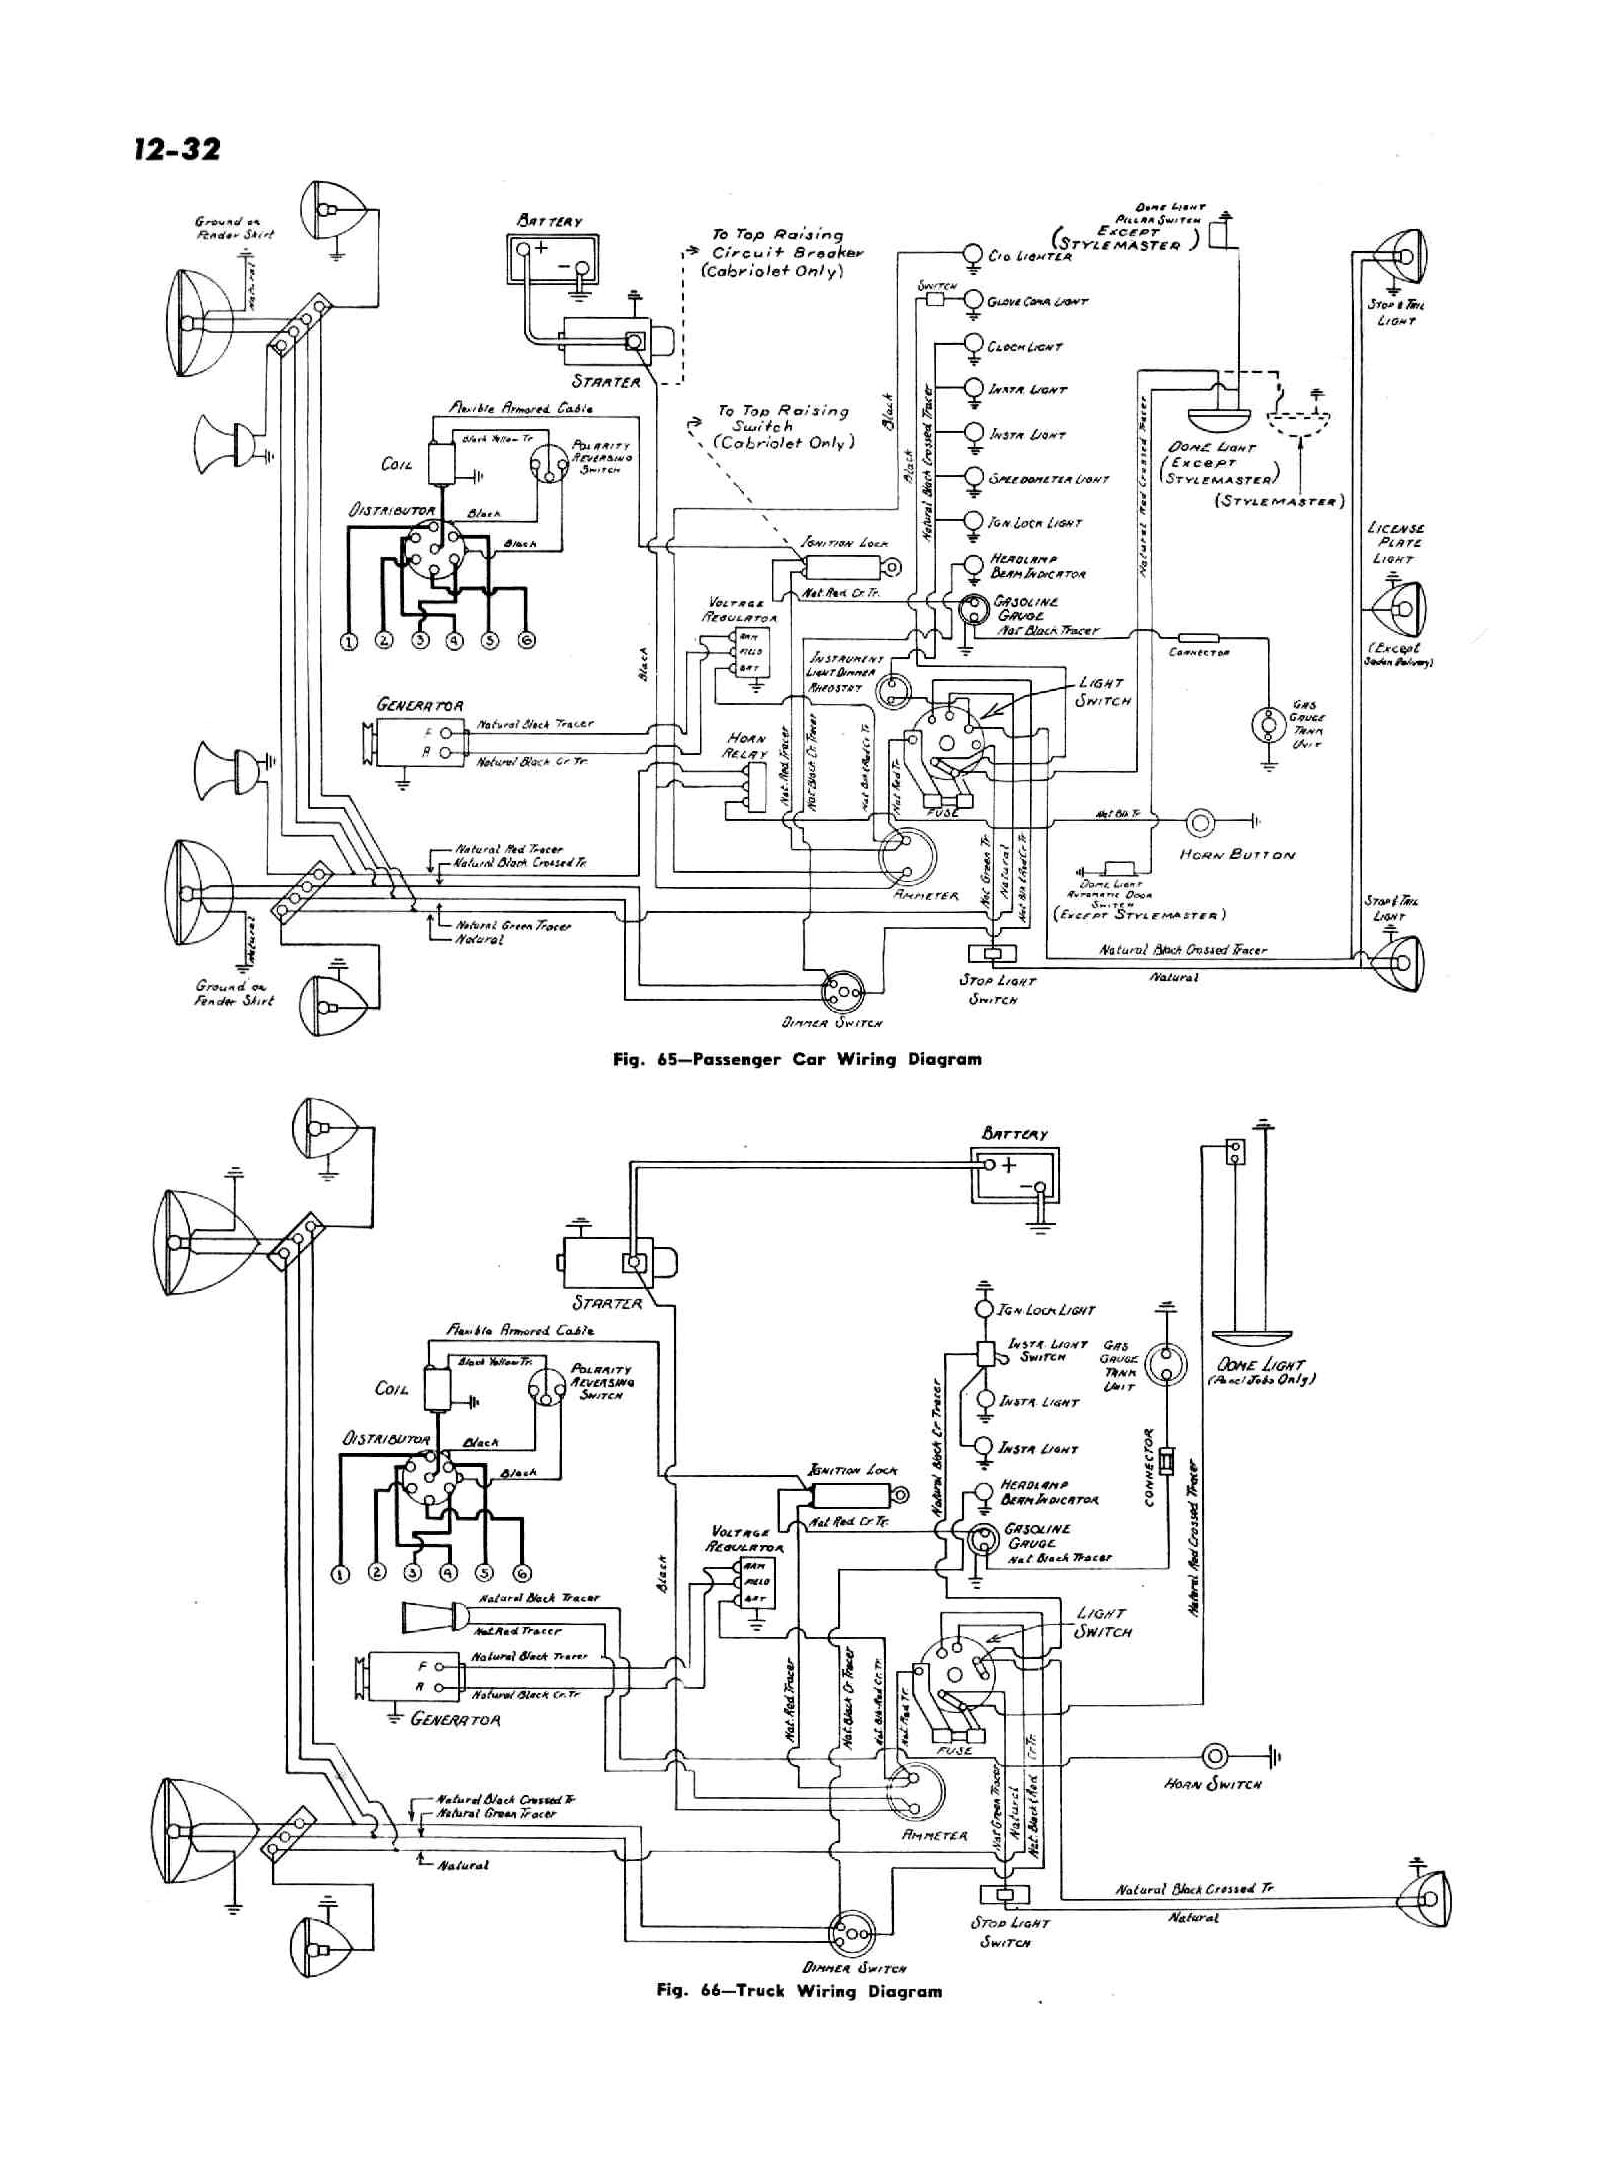 6 volt wiring diagram wiring library Boat Ignition Switch Wiring Diagram chevy wiring diagrams 1940 6 volt wiring harness pontiac